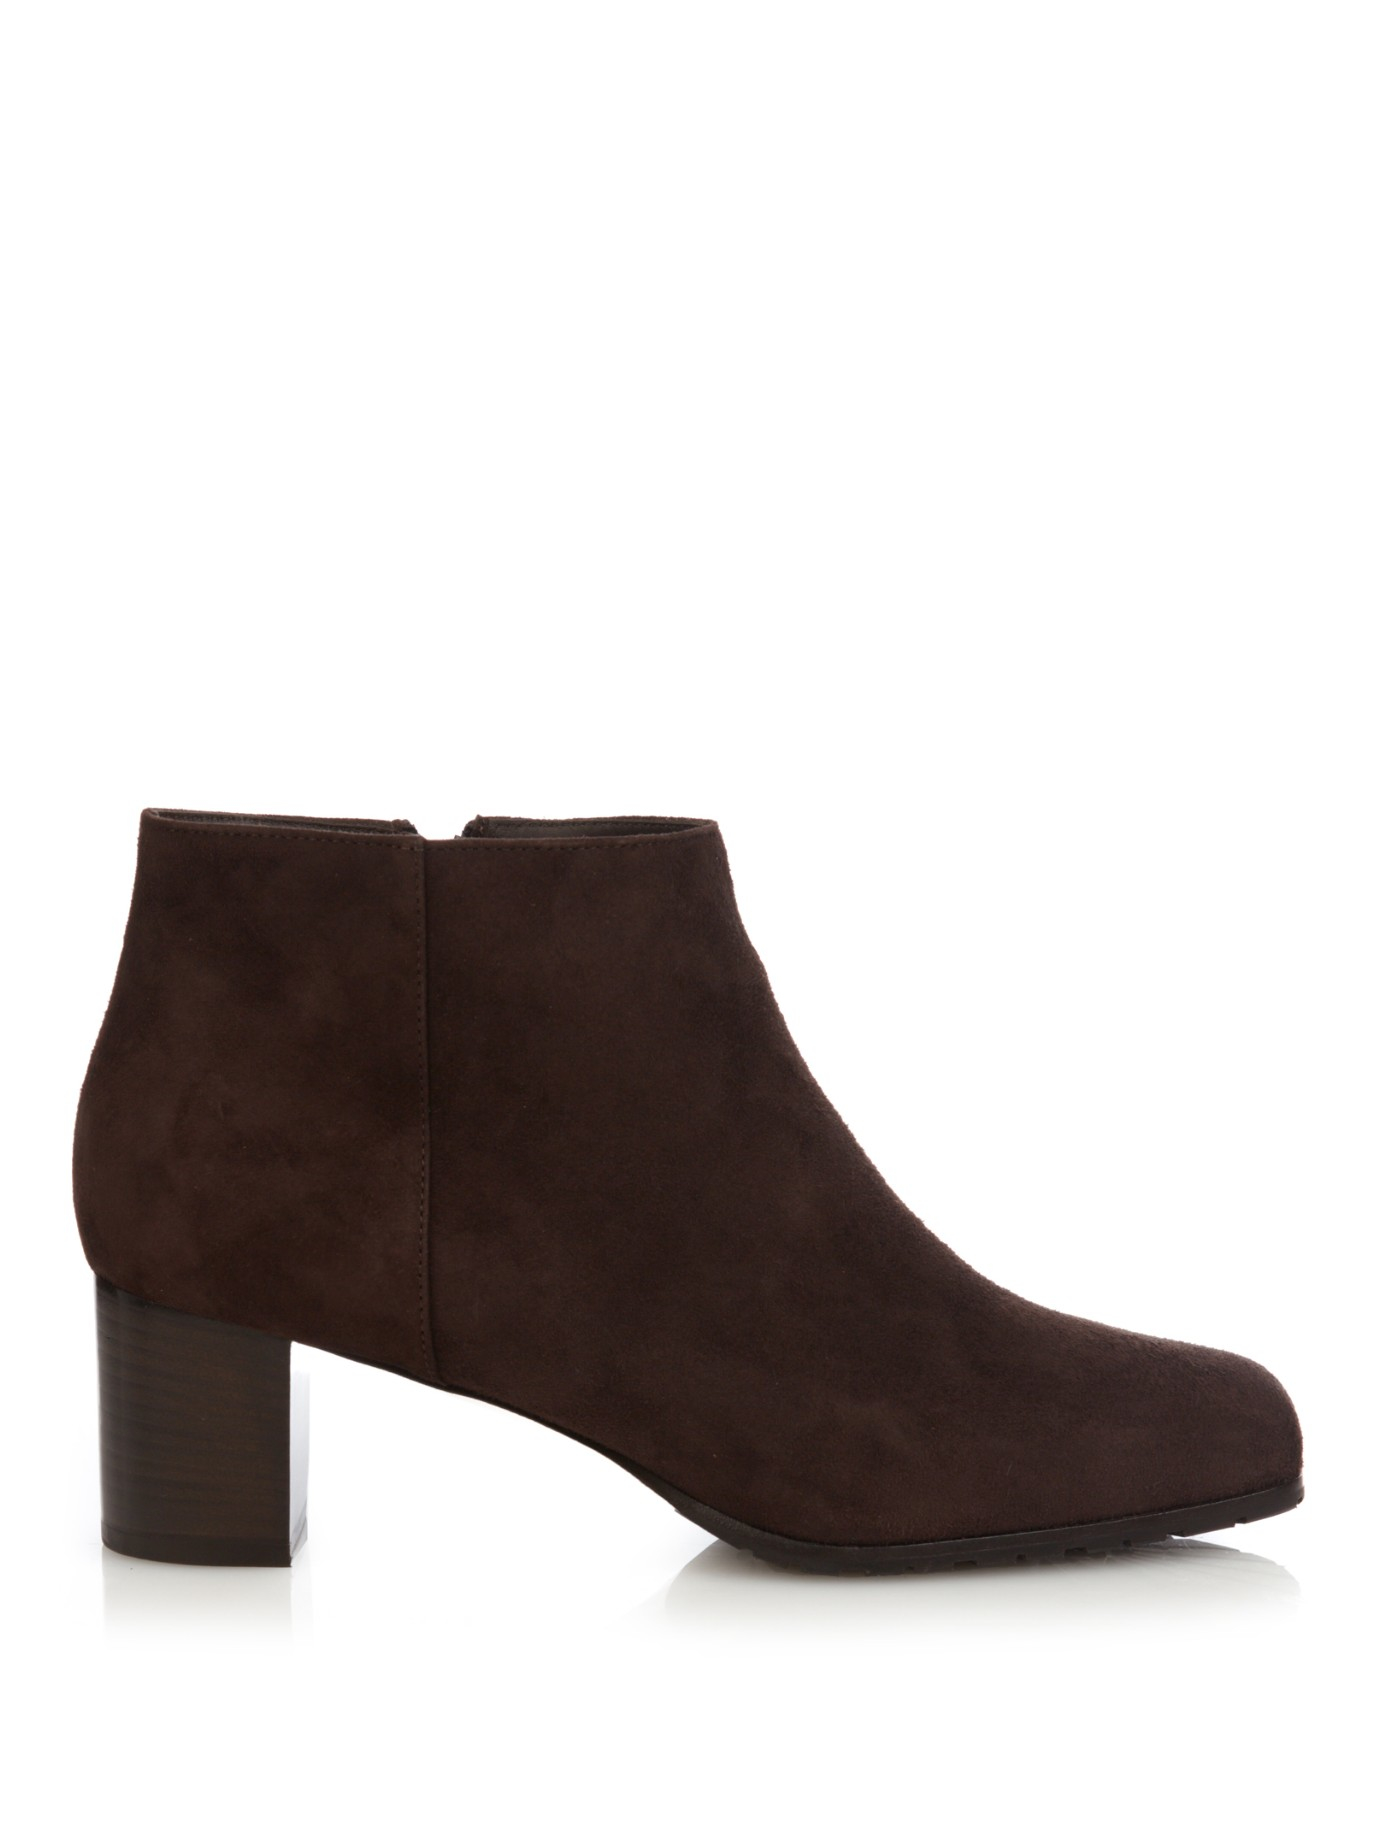 max mara struzzo suede ankle boots in brown lyst